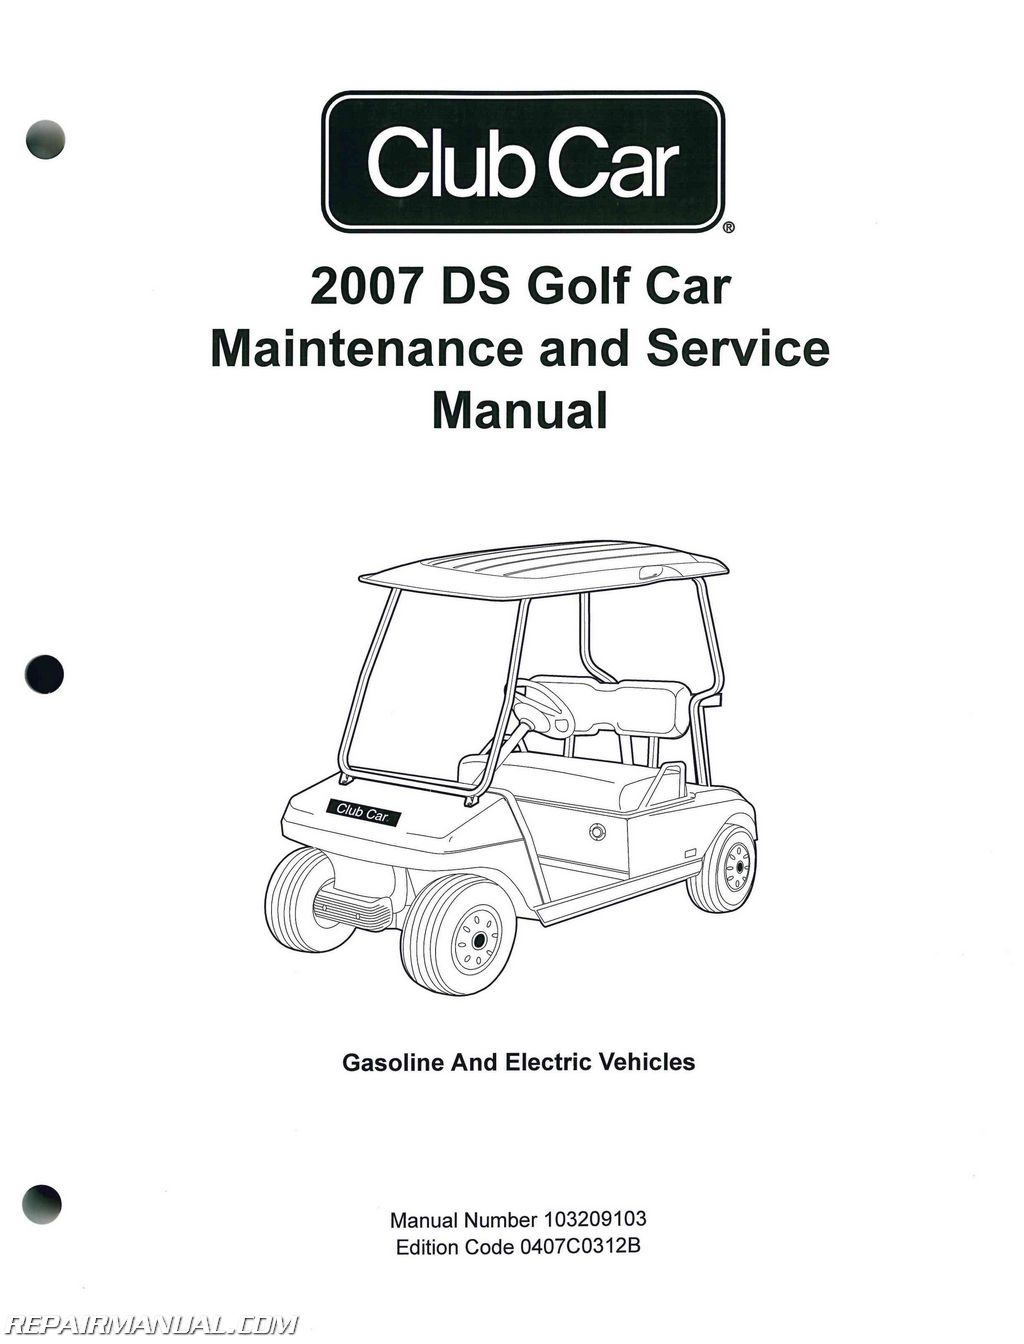 Diagram Club Car Schematic